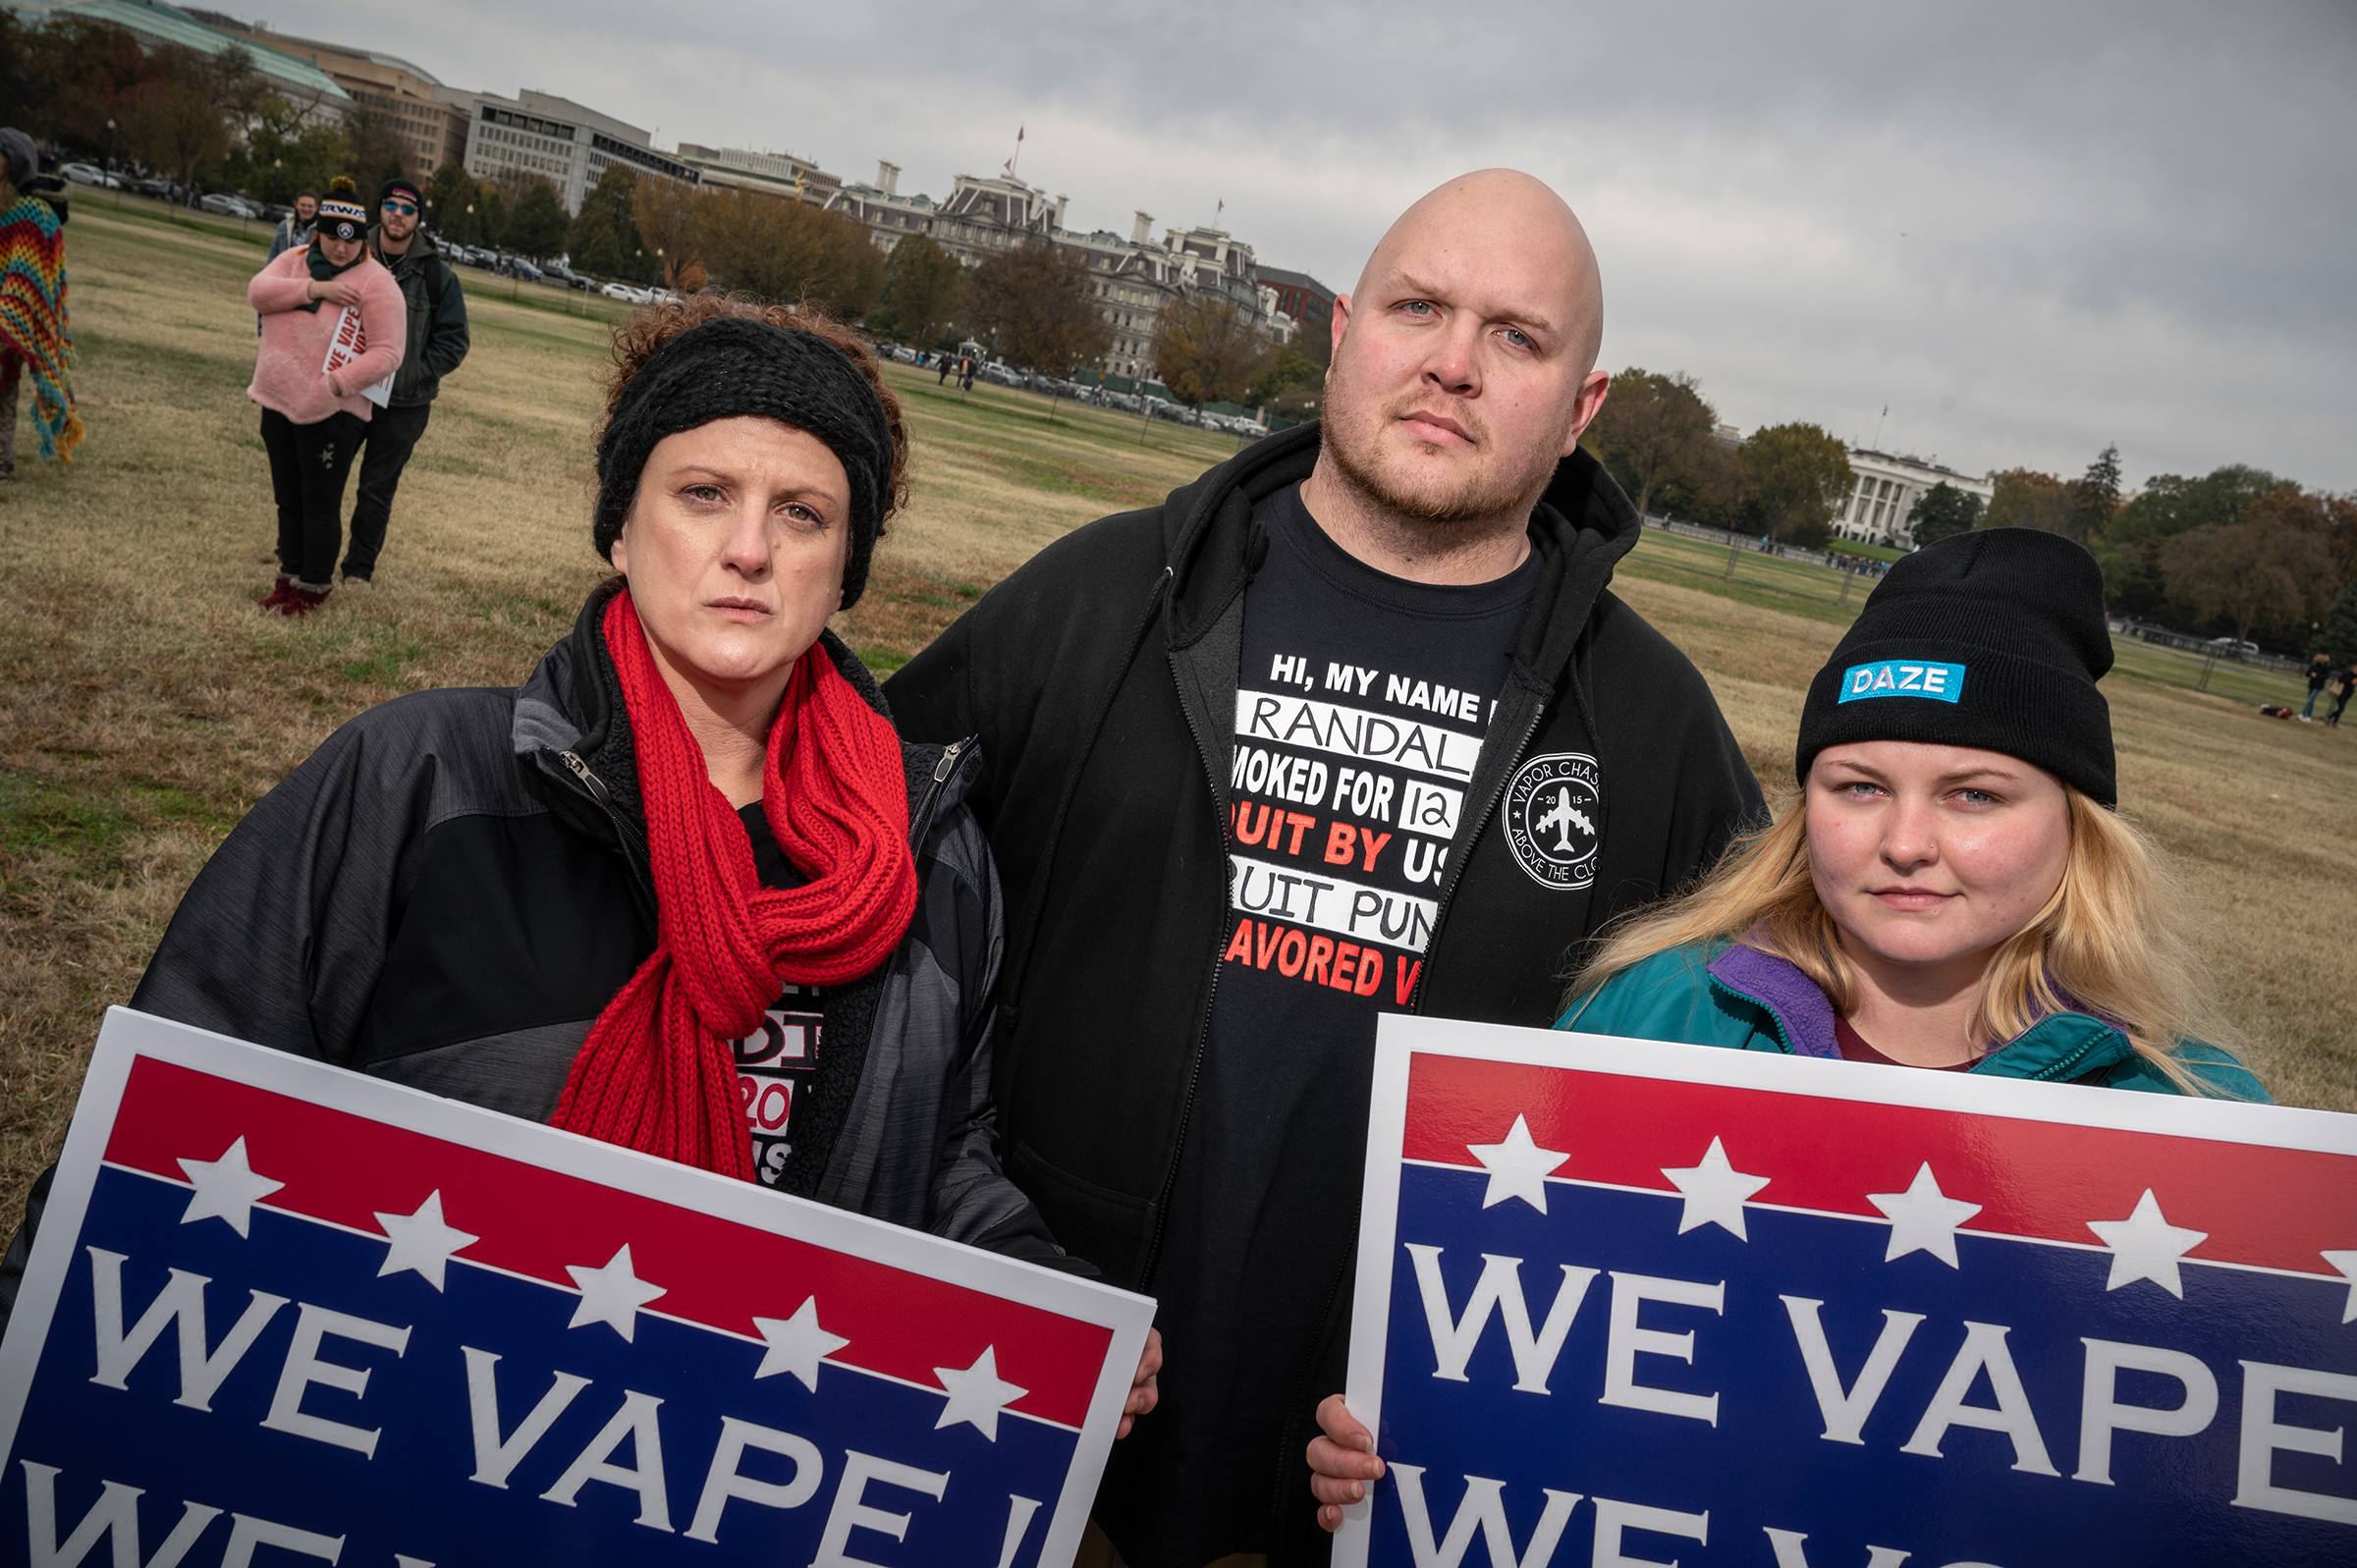 WASHINGTON, D.C. NOVEMBER 7, 2019 Heidi Kazle, Randall Smith and Jessica Yerigan join activists in favor of vaping and e-cigarettes near the National Mall and the White House to urge legislators to maintain legality for these products. Photo by David Butow/for Rolling Stone